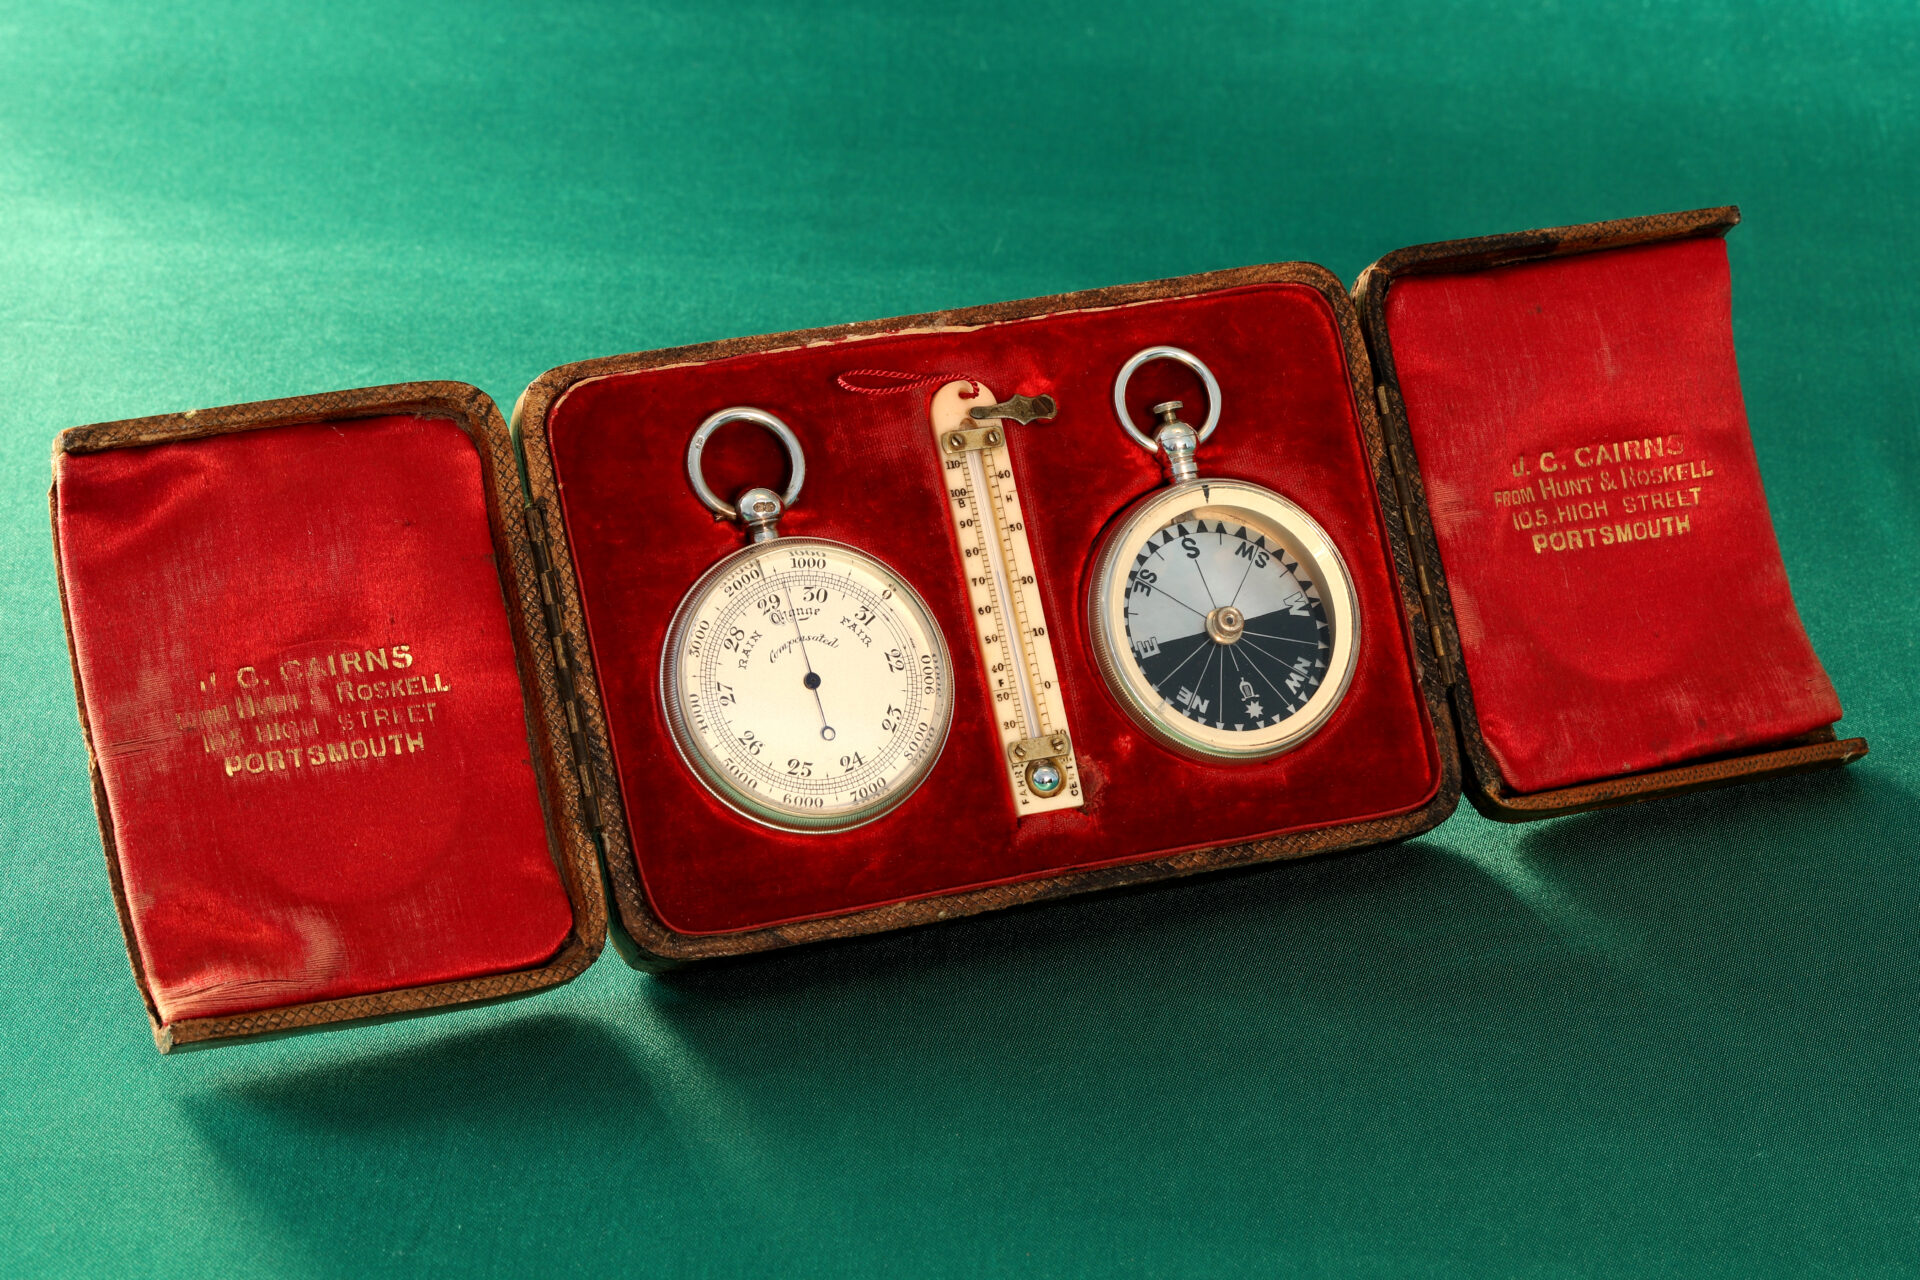 Image of open case from Cairns Silver Pocket Barometer Compendium c1892 showing the retailer's details and the pocket barometer, thermometer and compass, taken from lefthand side